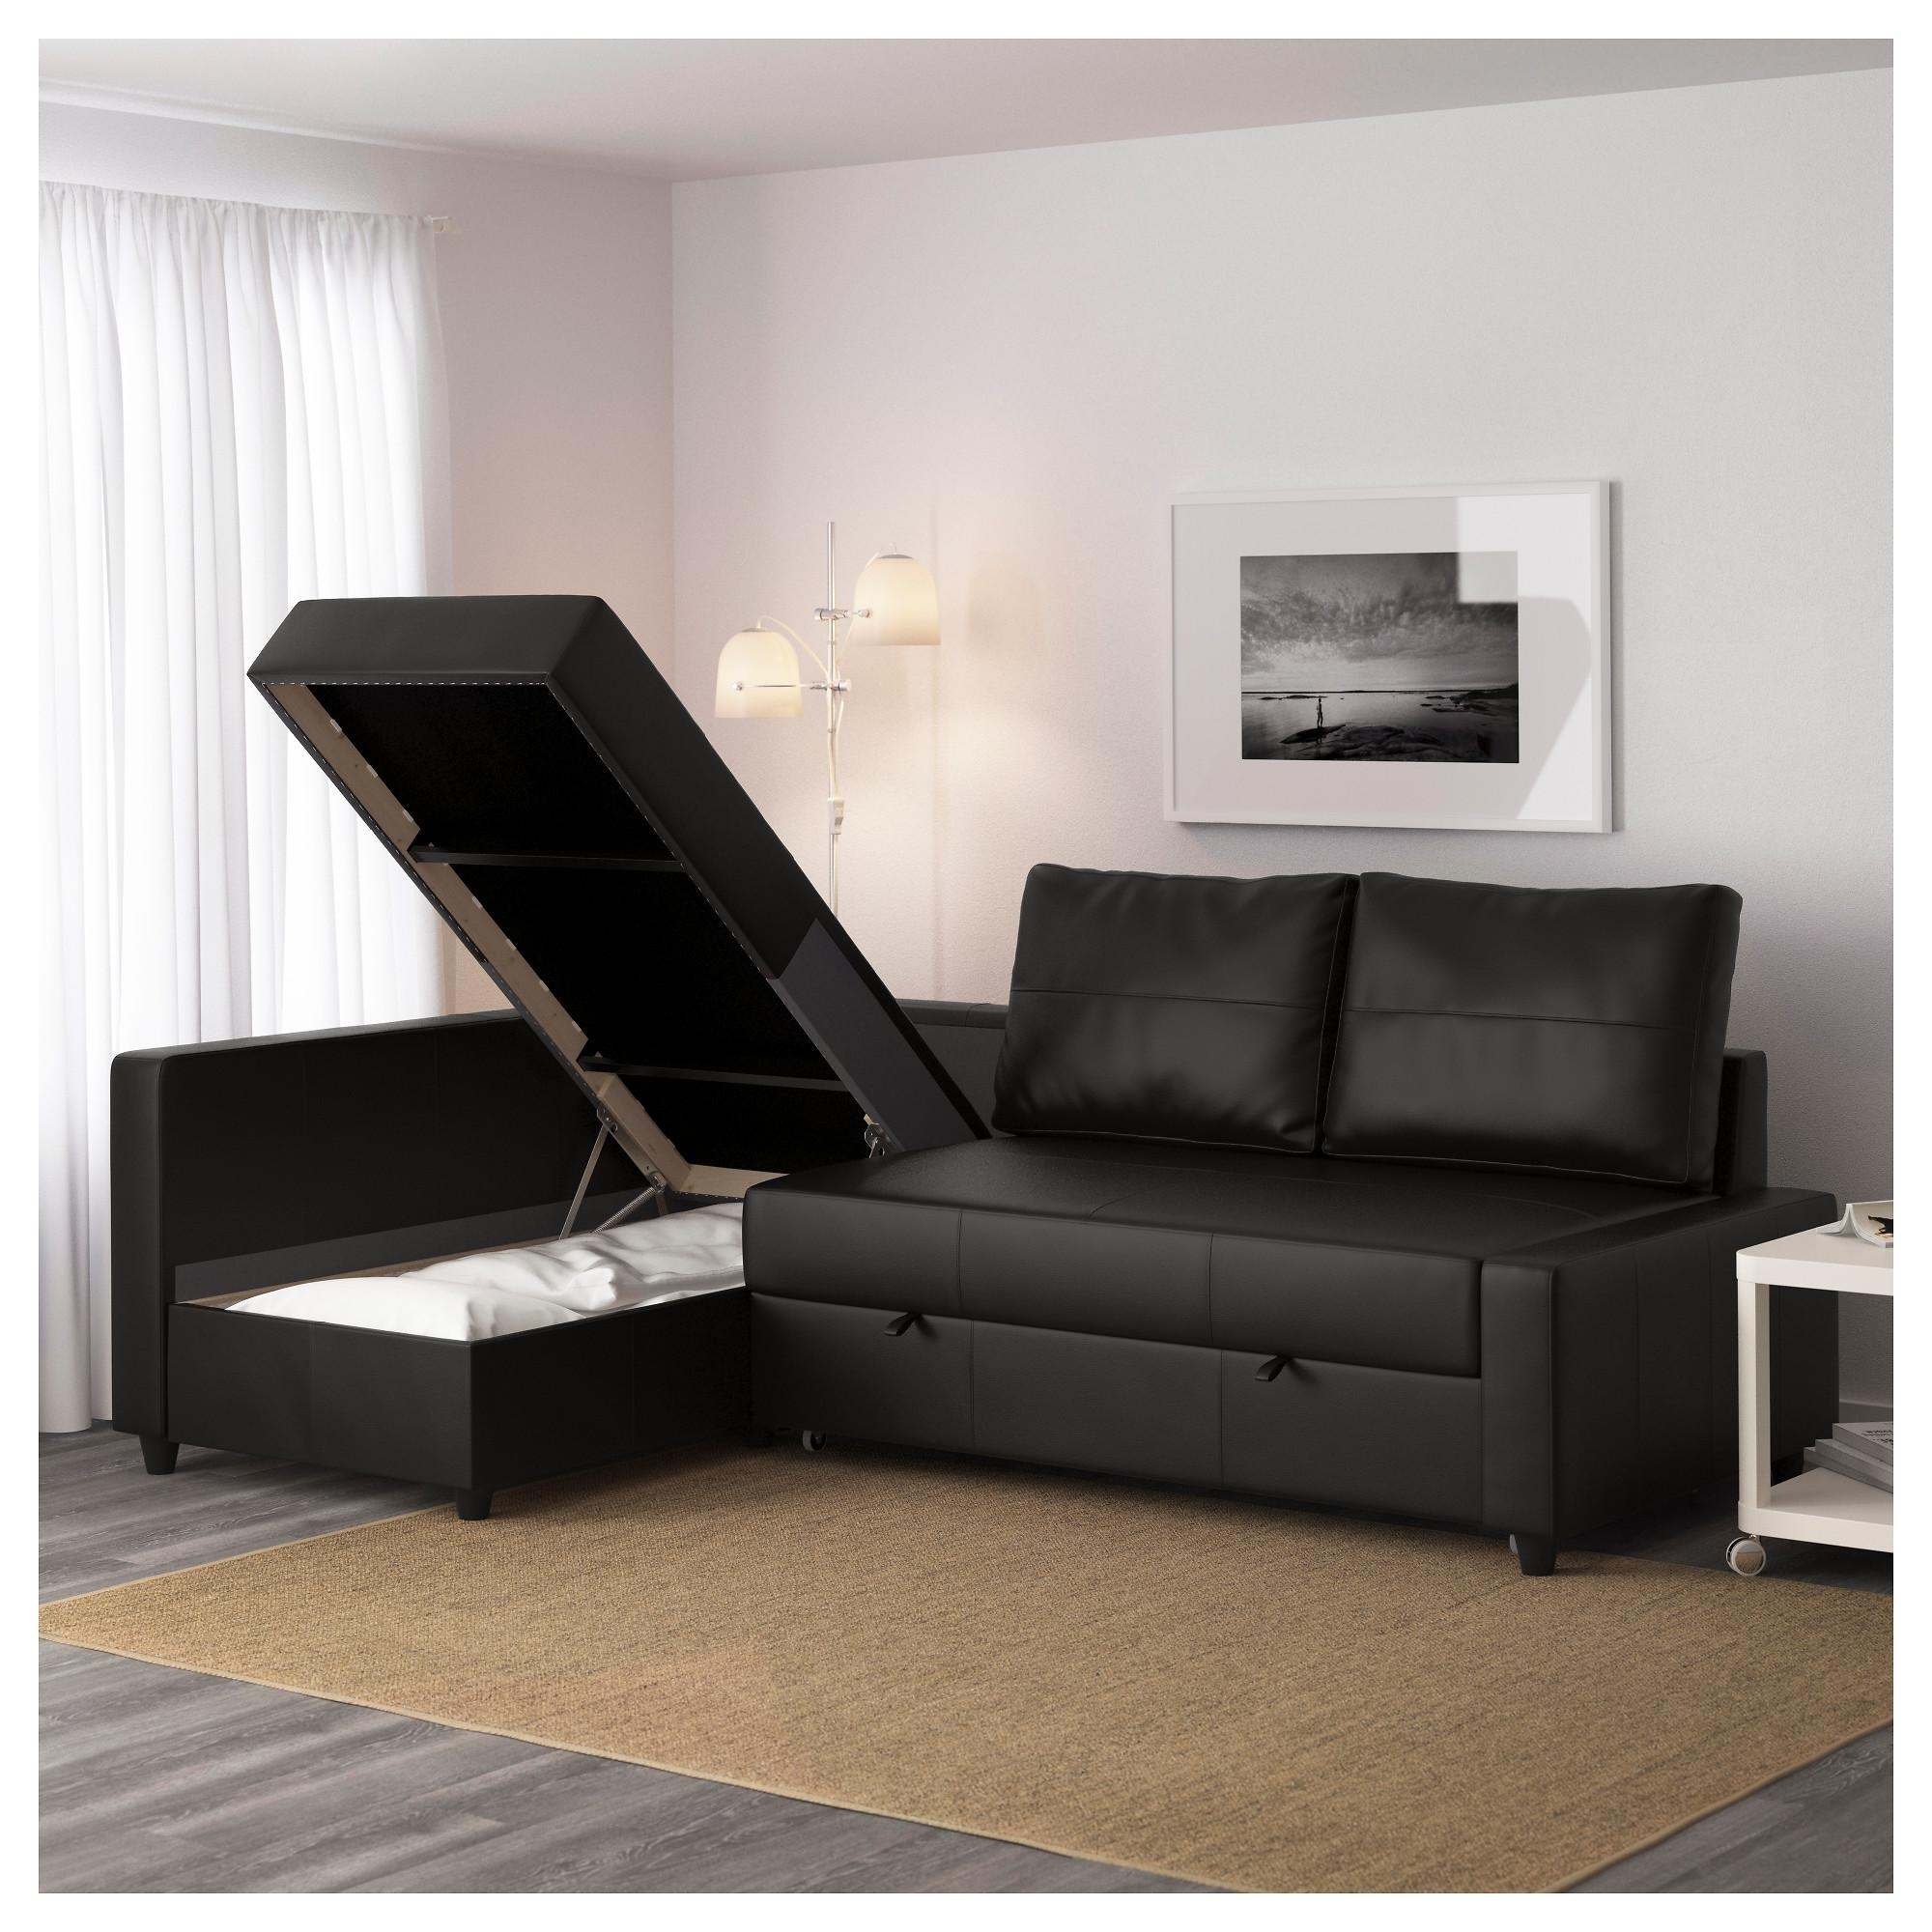 Featured Image of Ikea Storage Sofa Bed